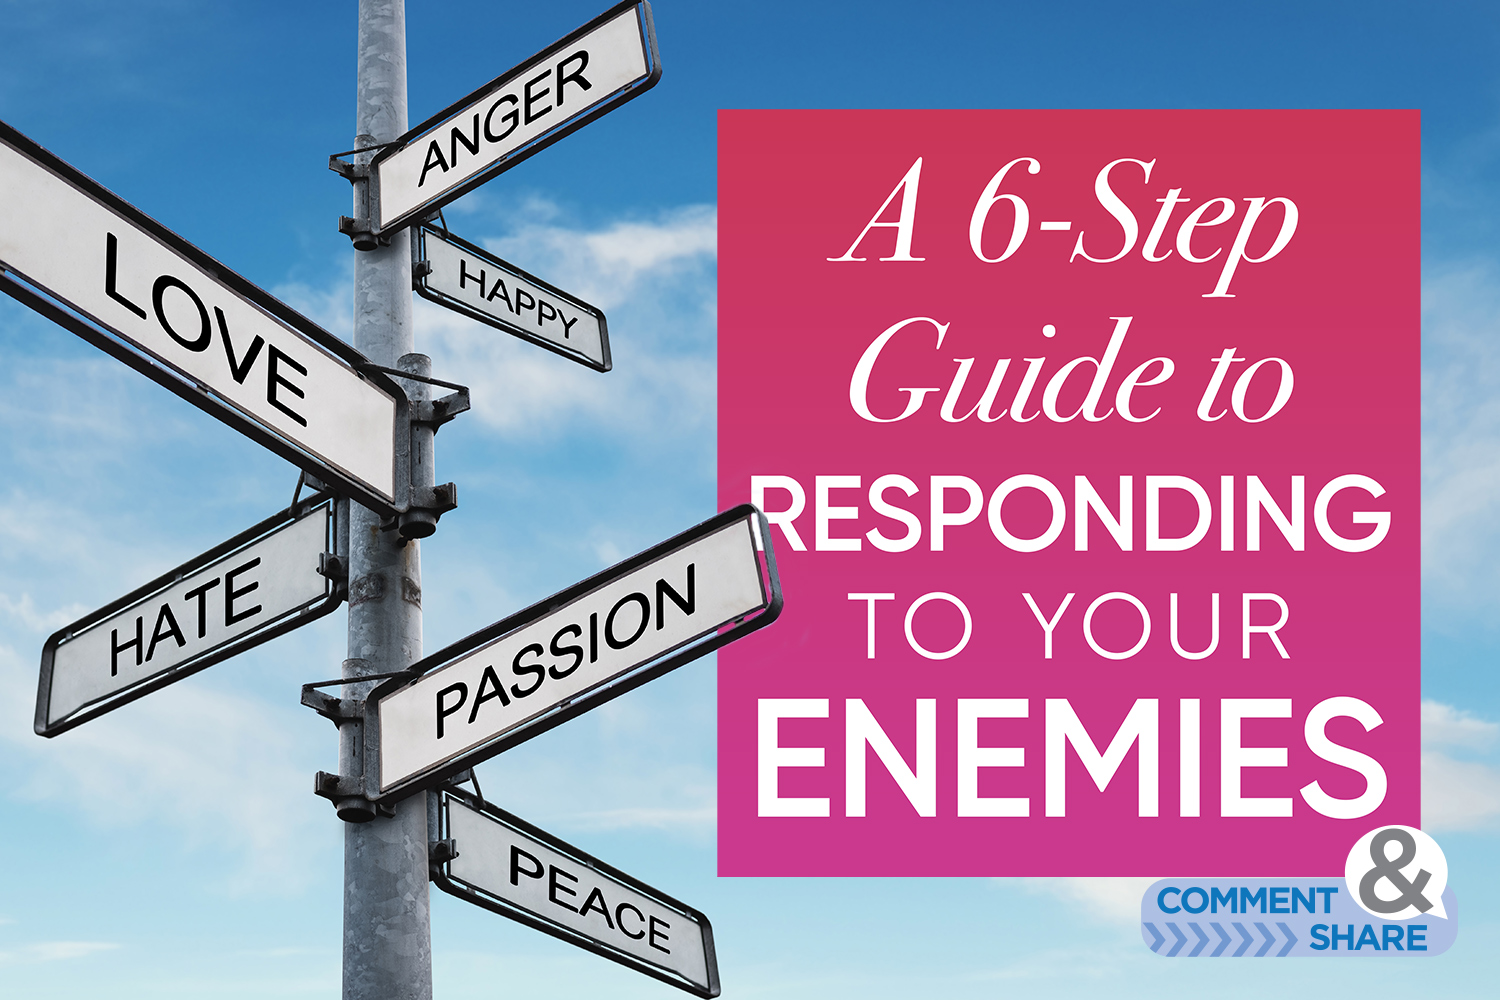 A 6-Step Guide to Responding to Your Enemies